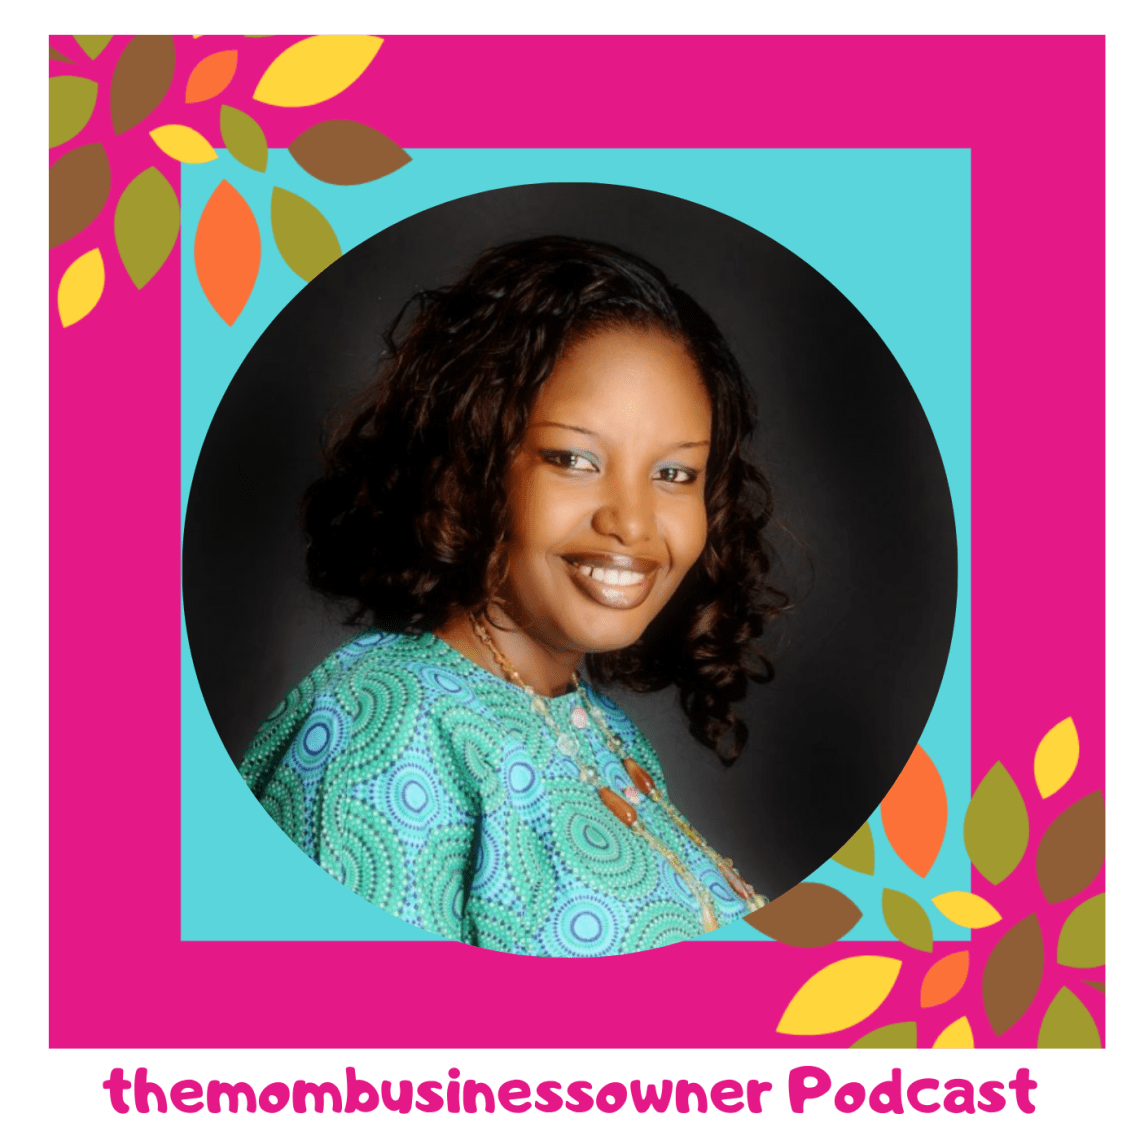 themombusinessowner podcast